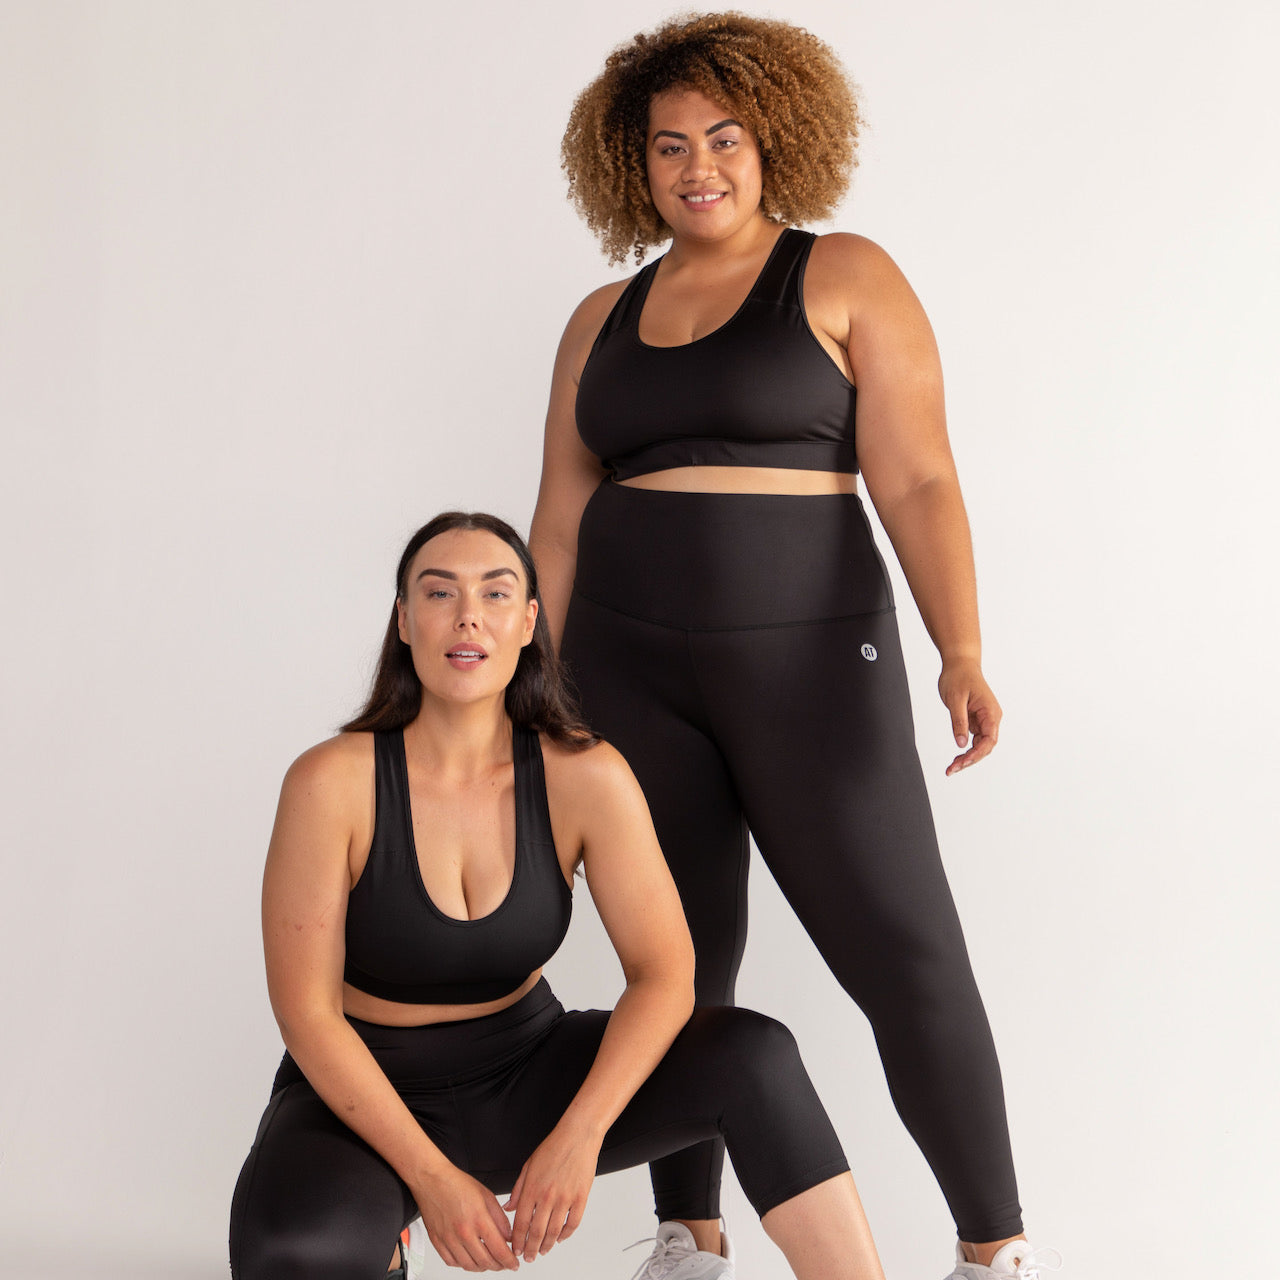 A pair of models in black workout sets by Active Truth against a white background.